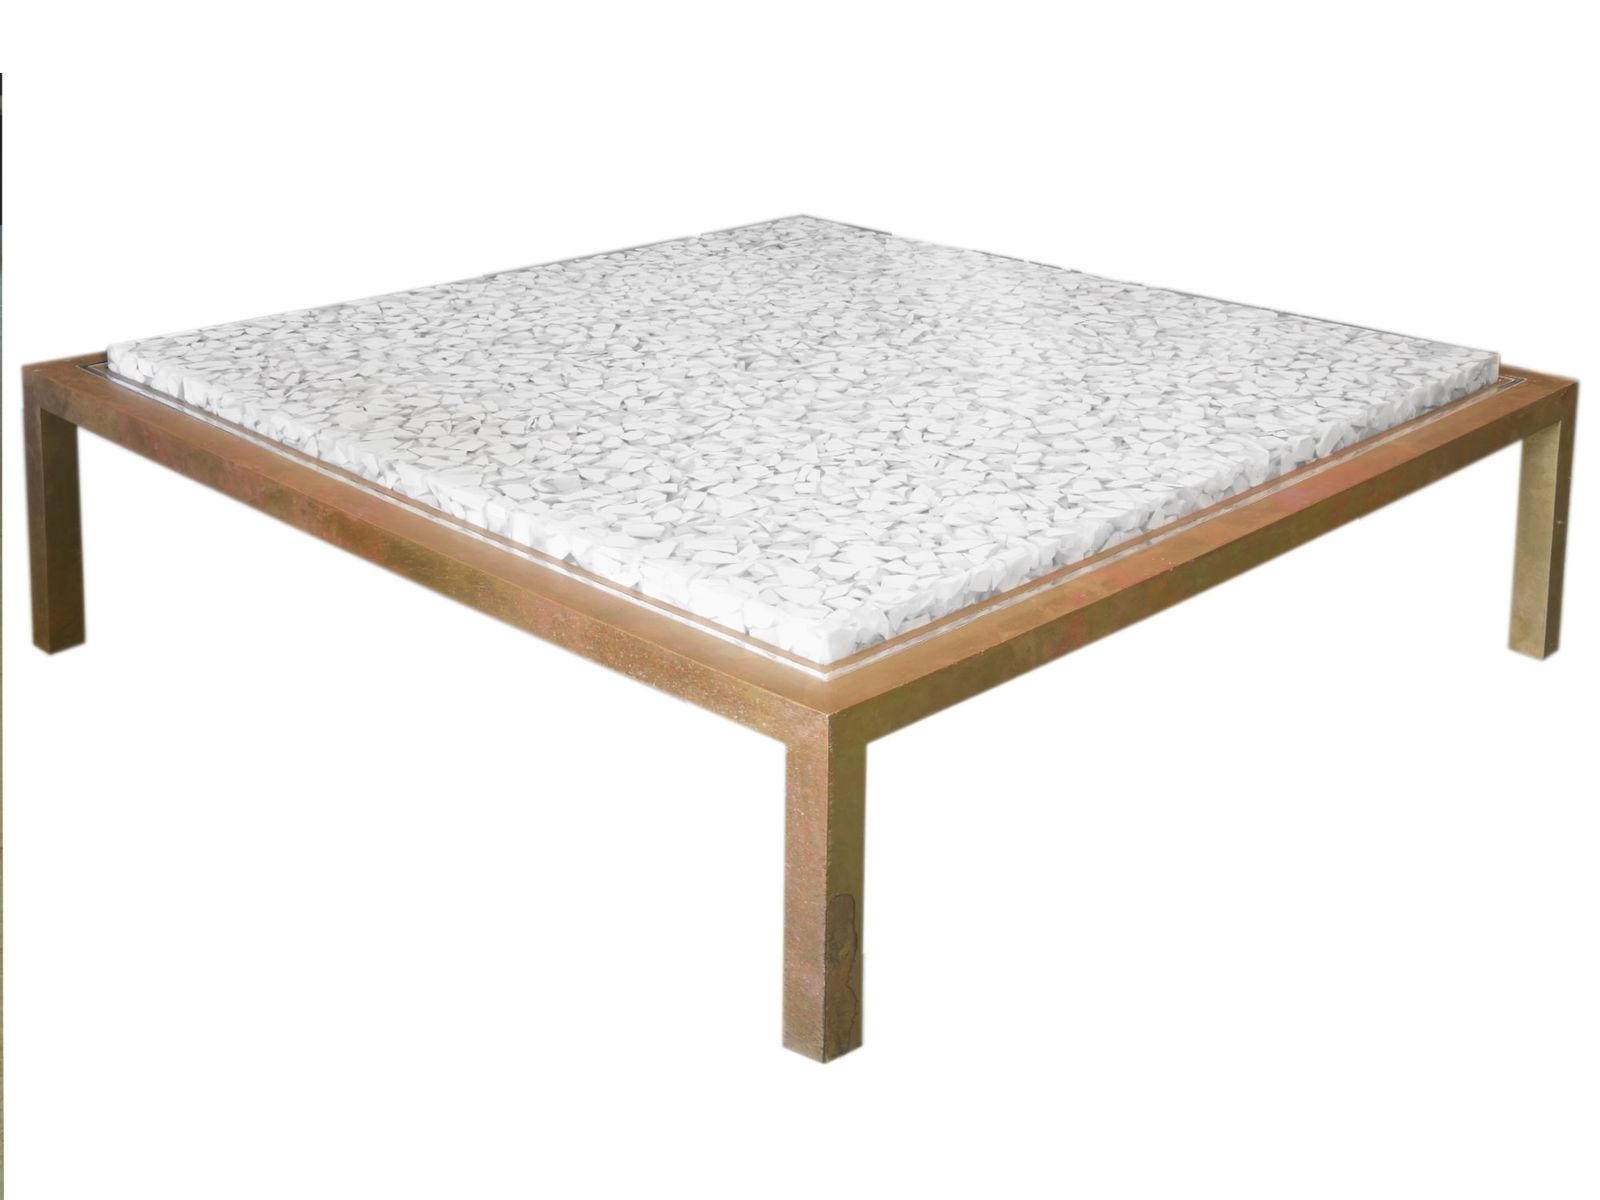 Resin Coffee Table By Jean Brand 1970s For Sale At Pamono